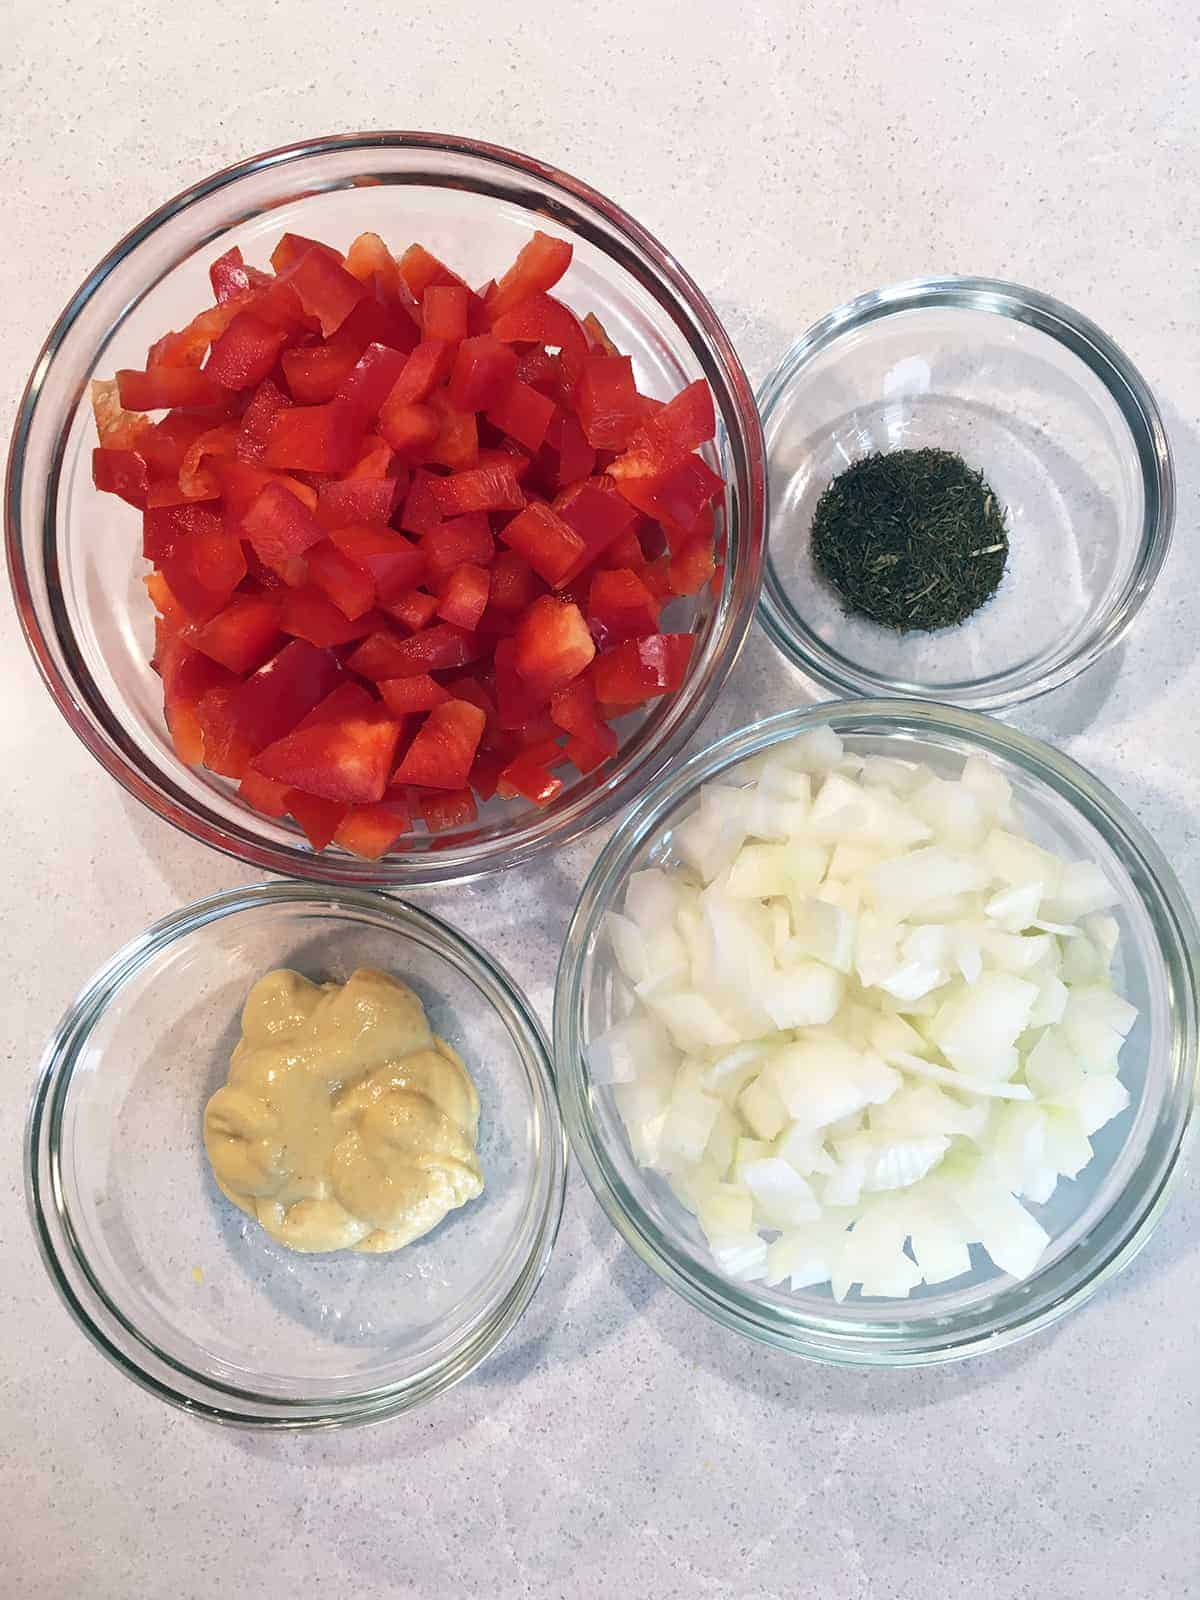 Diced red pepper and white onion alongside dried dill and Dijon mustard in glass food prep bowls